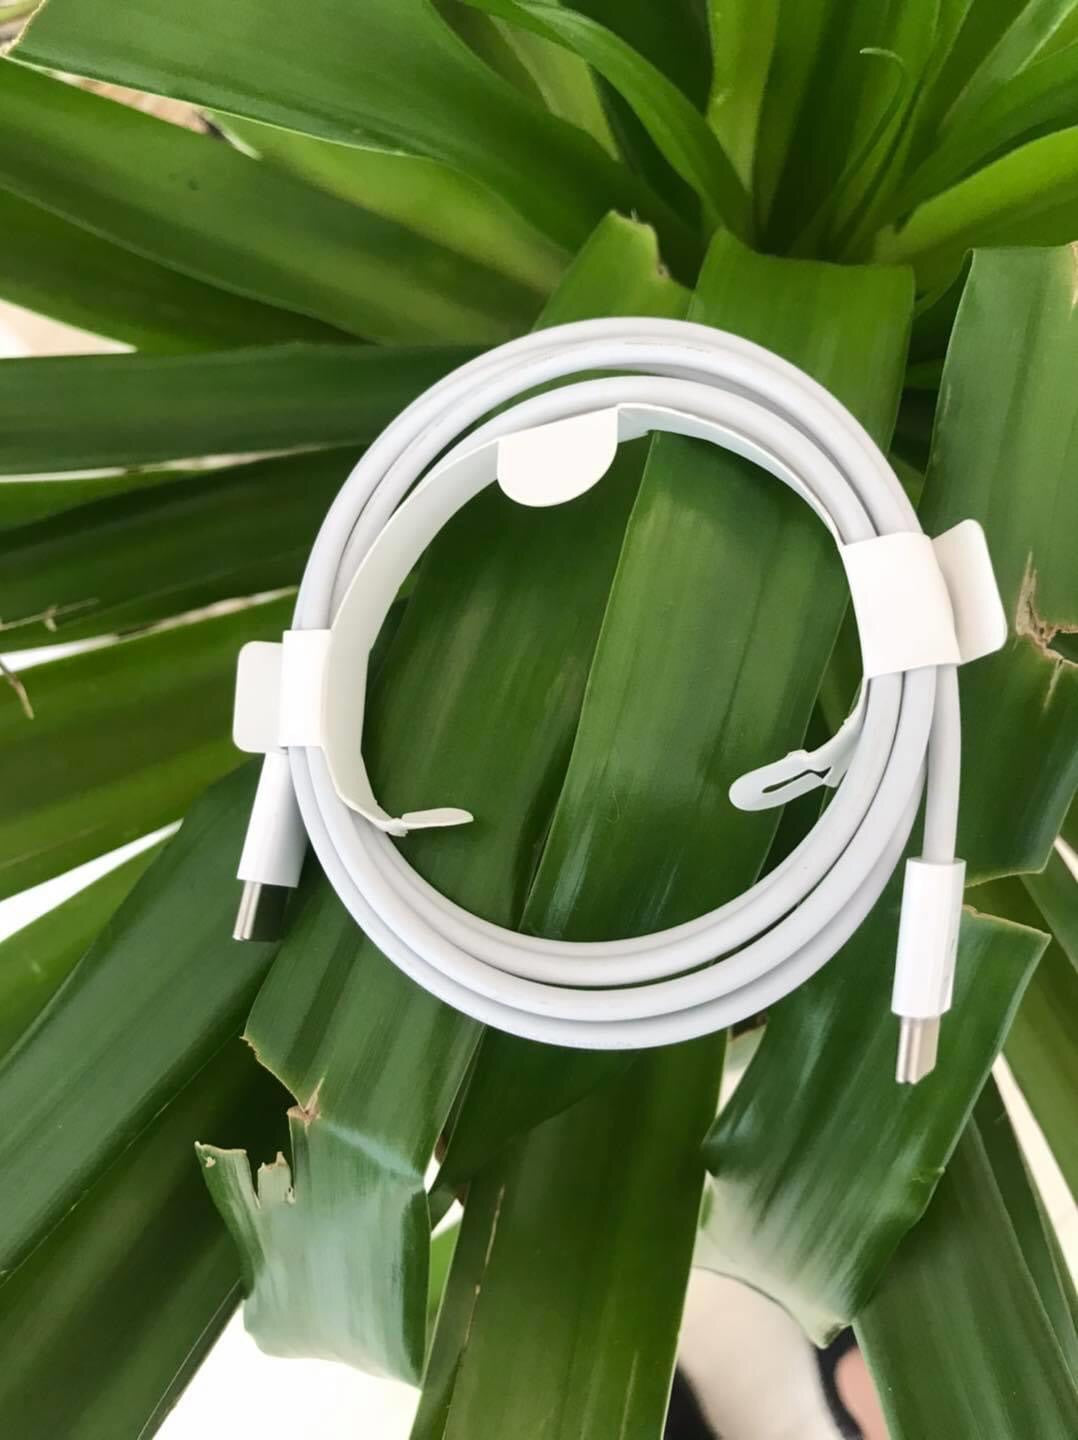 i1113 Apple Original USB-C to USB-C Cable(1m)